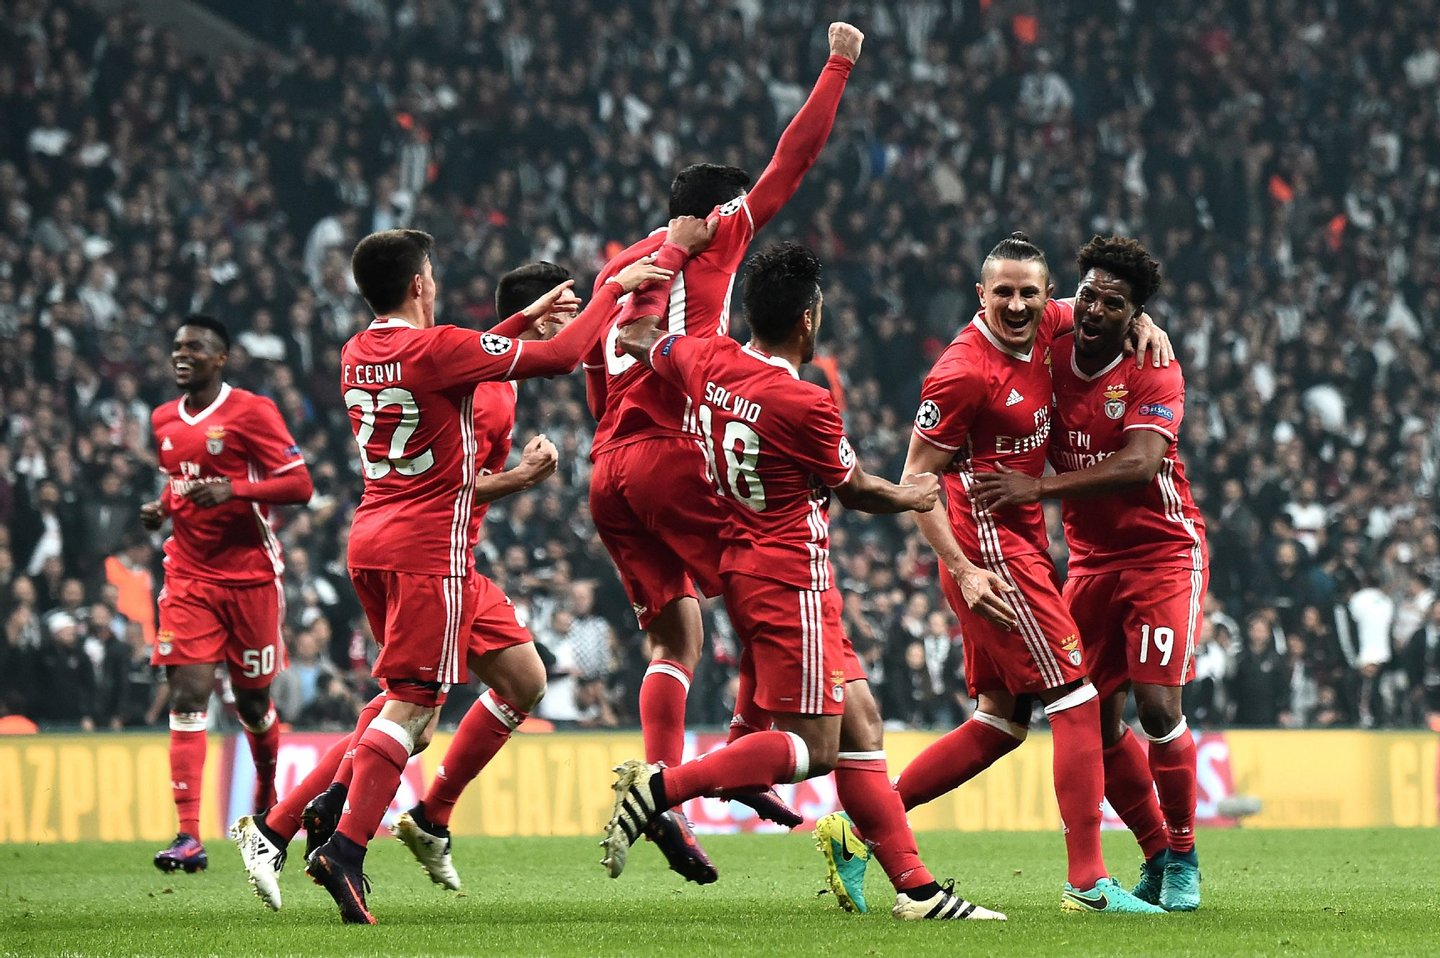 Benfica's Ljubomir Fejsa (2R) celebrates with his teammates after scoring a goal against Besiktas during the UEFA Champions League Group B football match between Besiktas Istanbul and Benfica Lisbon at Vodafone arena on November 23, 2016 in Istanbul . / AFP / OZAN KOSE (Photo credit should read OZAN KOSE/AFP/Getty Images)